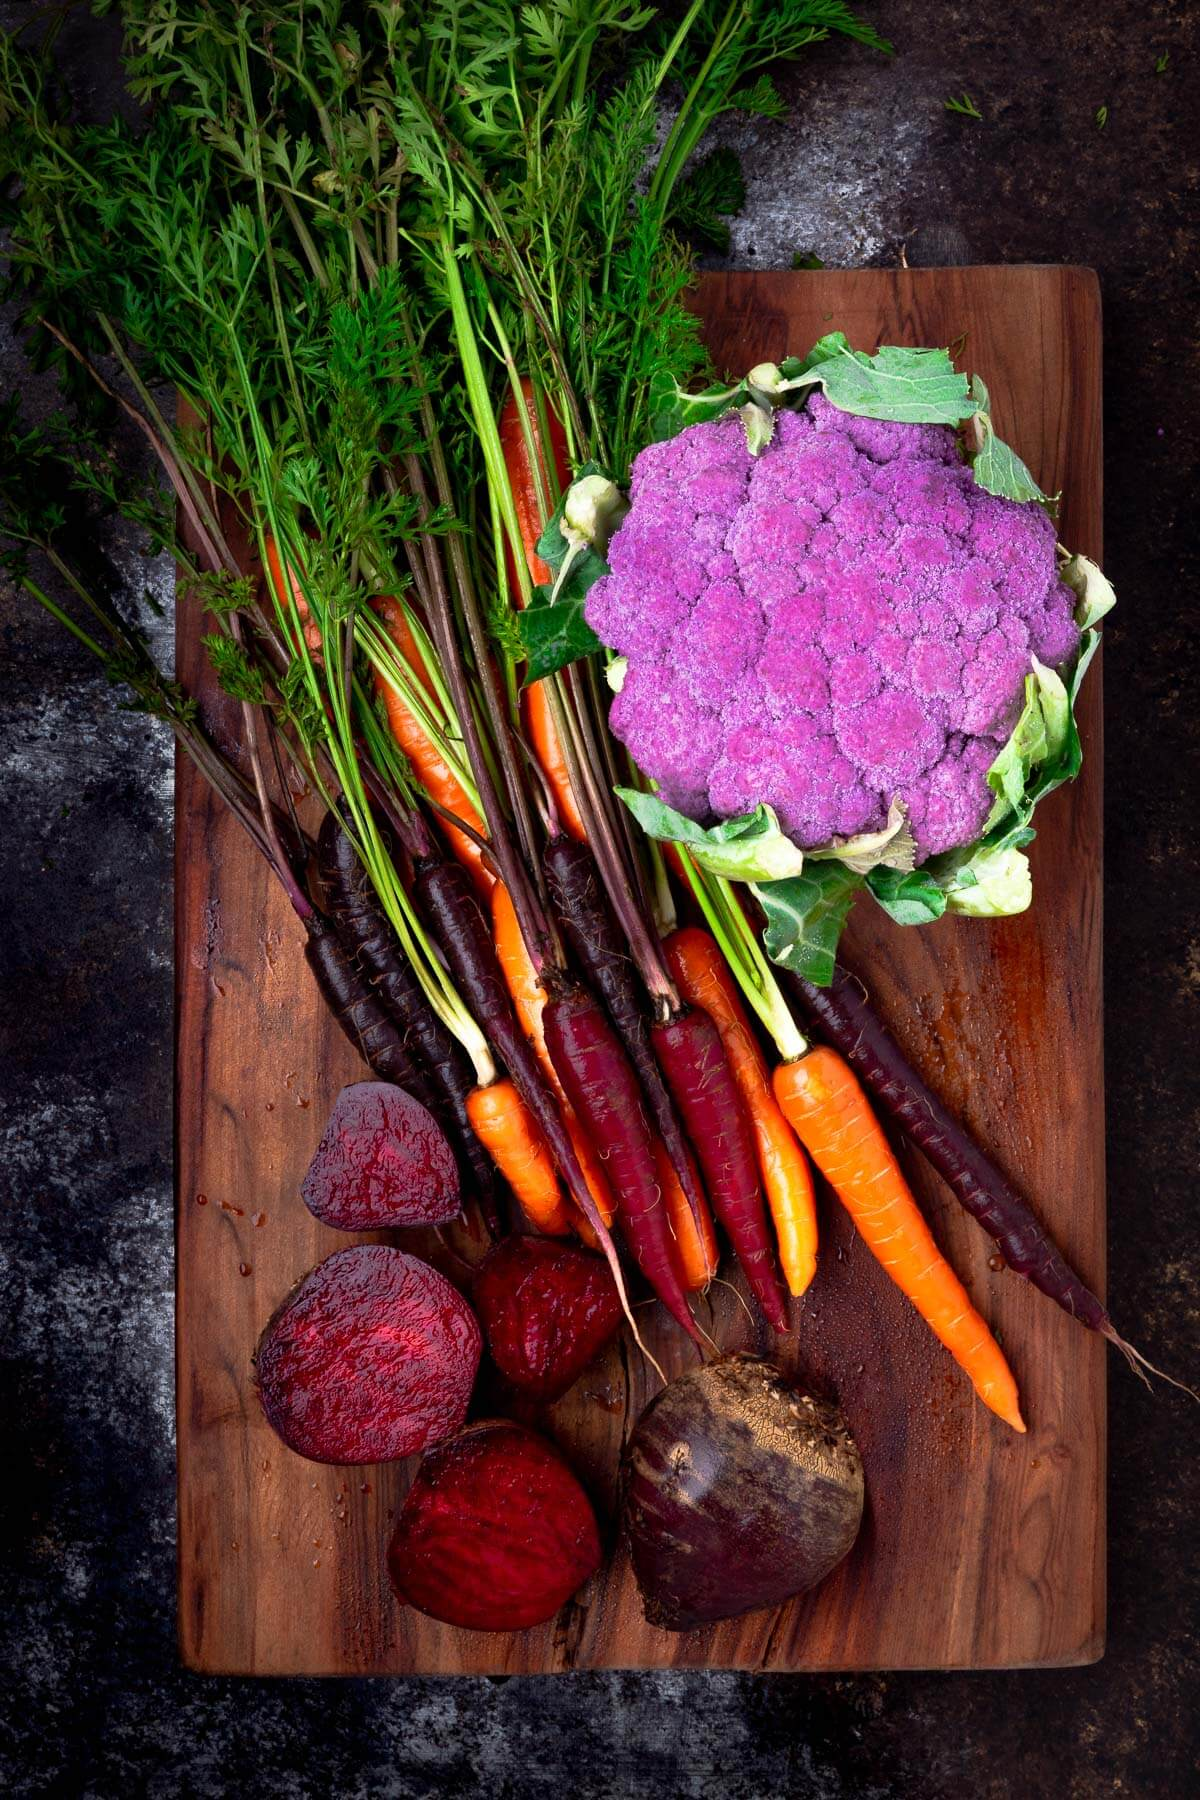 Fresh rainbow carrots, purple cauliflower, and beets on a wooden cutting board.